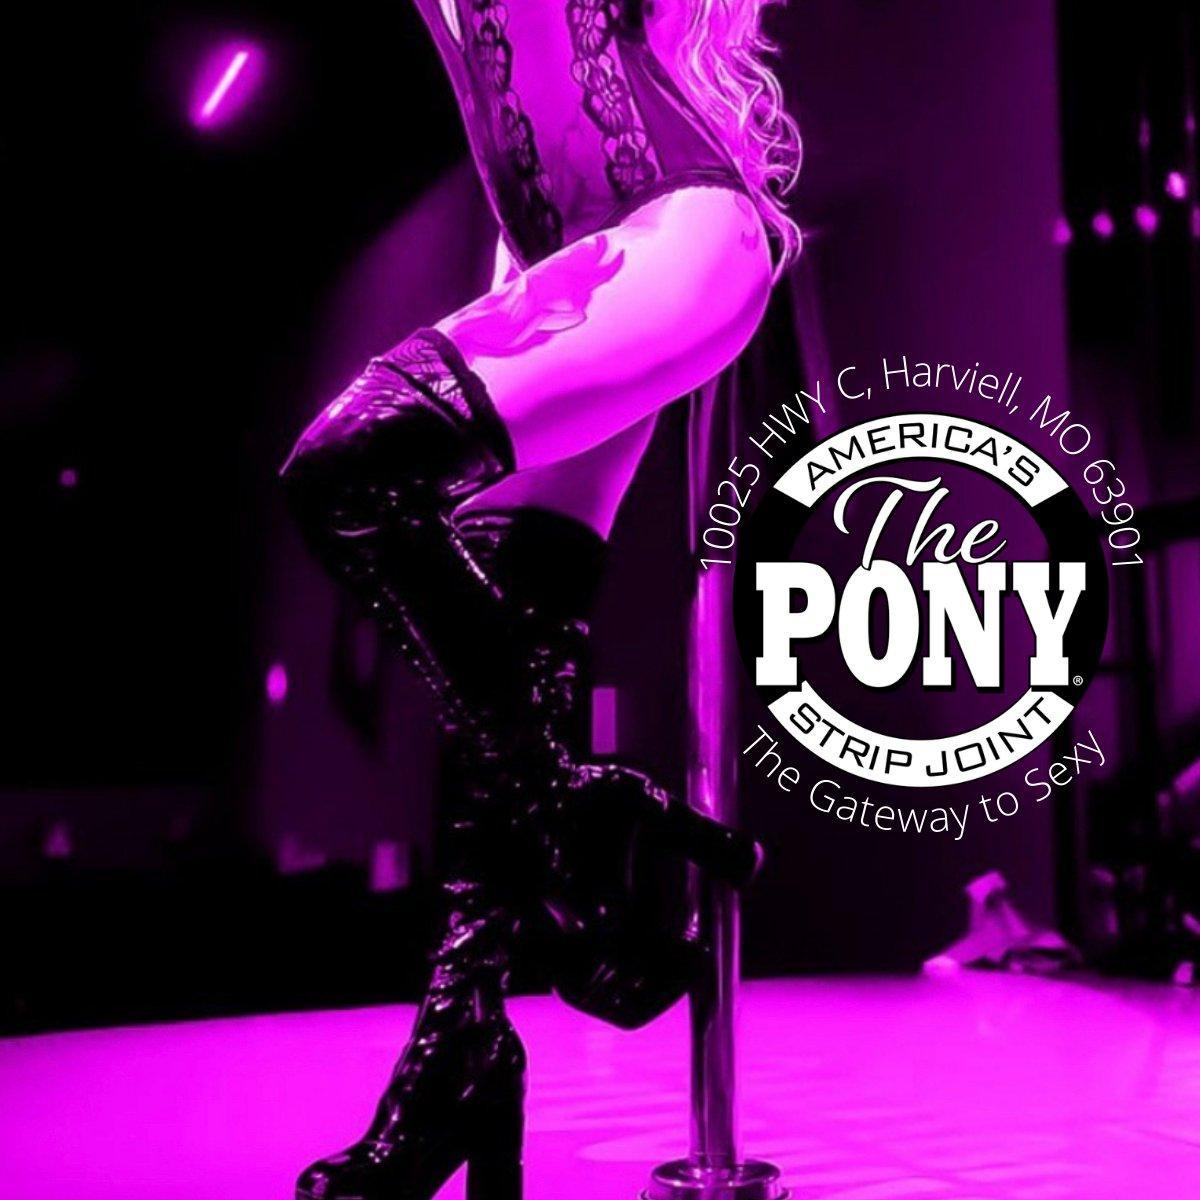 It's another sexy Saturday at the Pony and we're bringing the heat! Come and get a dance with your favorite showgirl tonight! Full bar, and Wildside opens at 1:30am! See you soon!  . . . #SexySaturday #PonyParty #Gateway #Poledancing #ThePony #PoplarBluff #StripJoint #StripClub